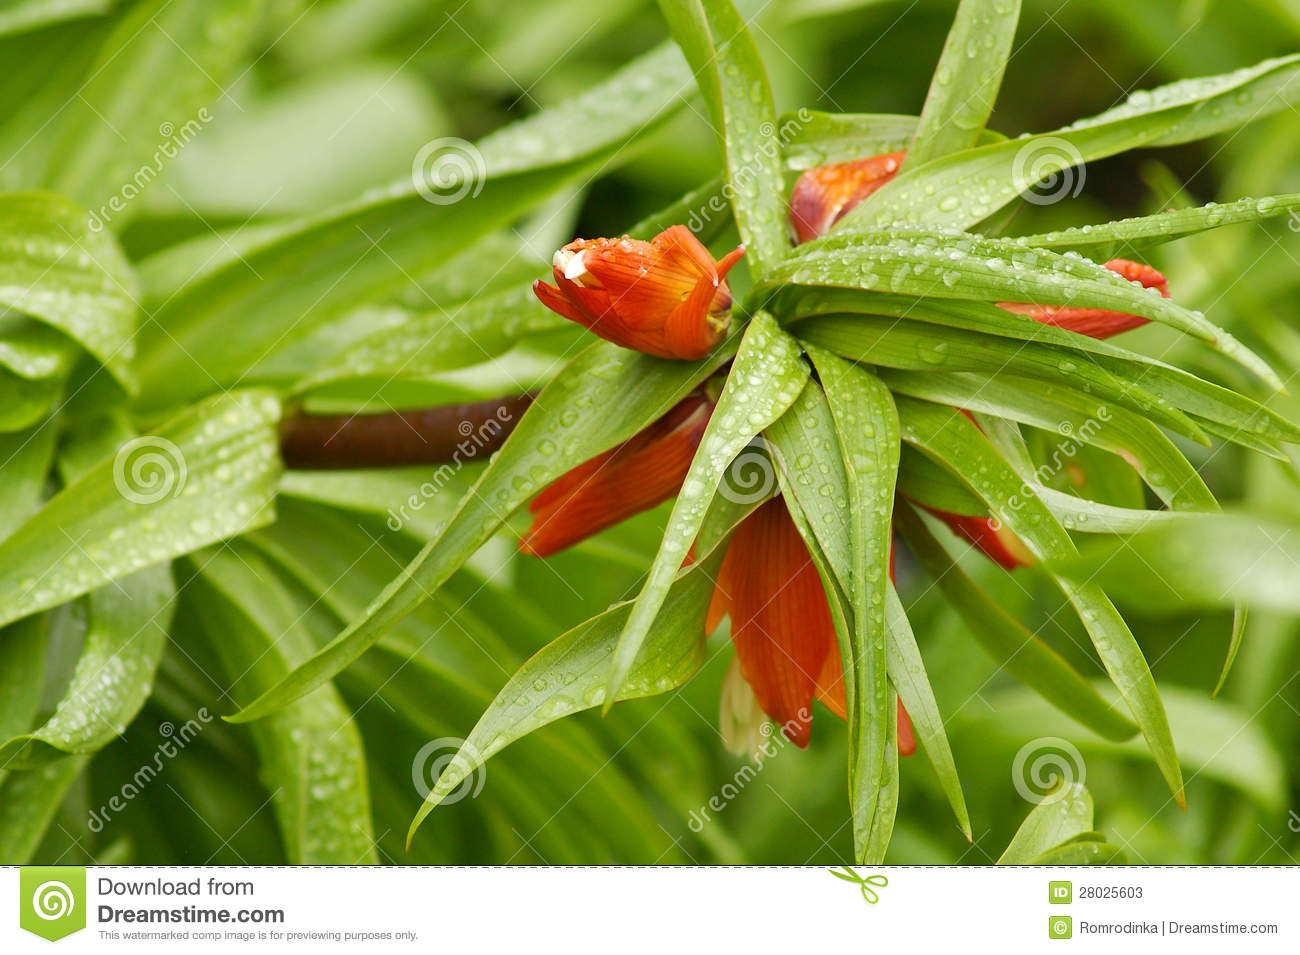 Les plantes vertes plantes grasses photos de for Plantes sur internet